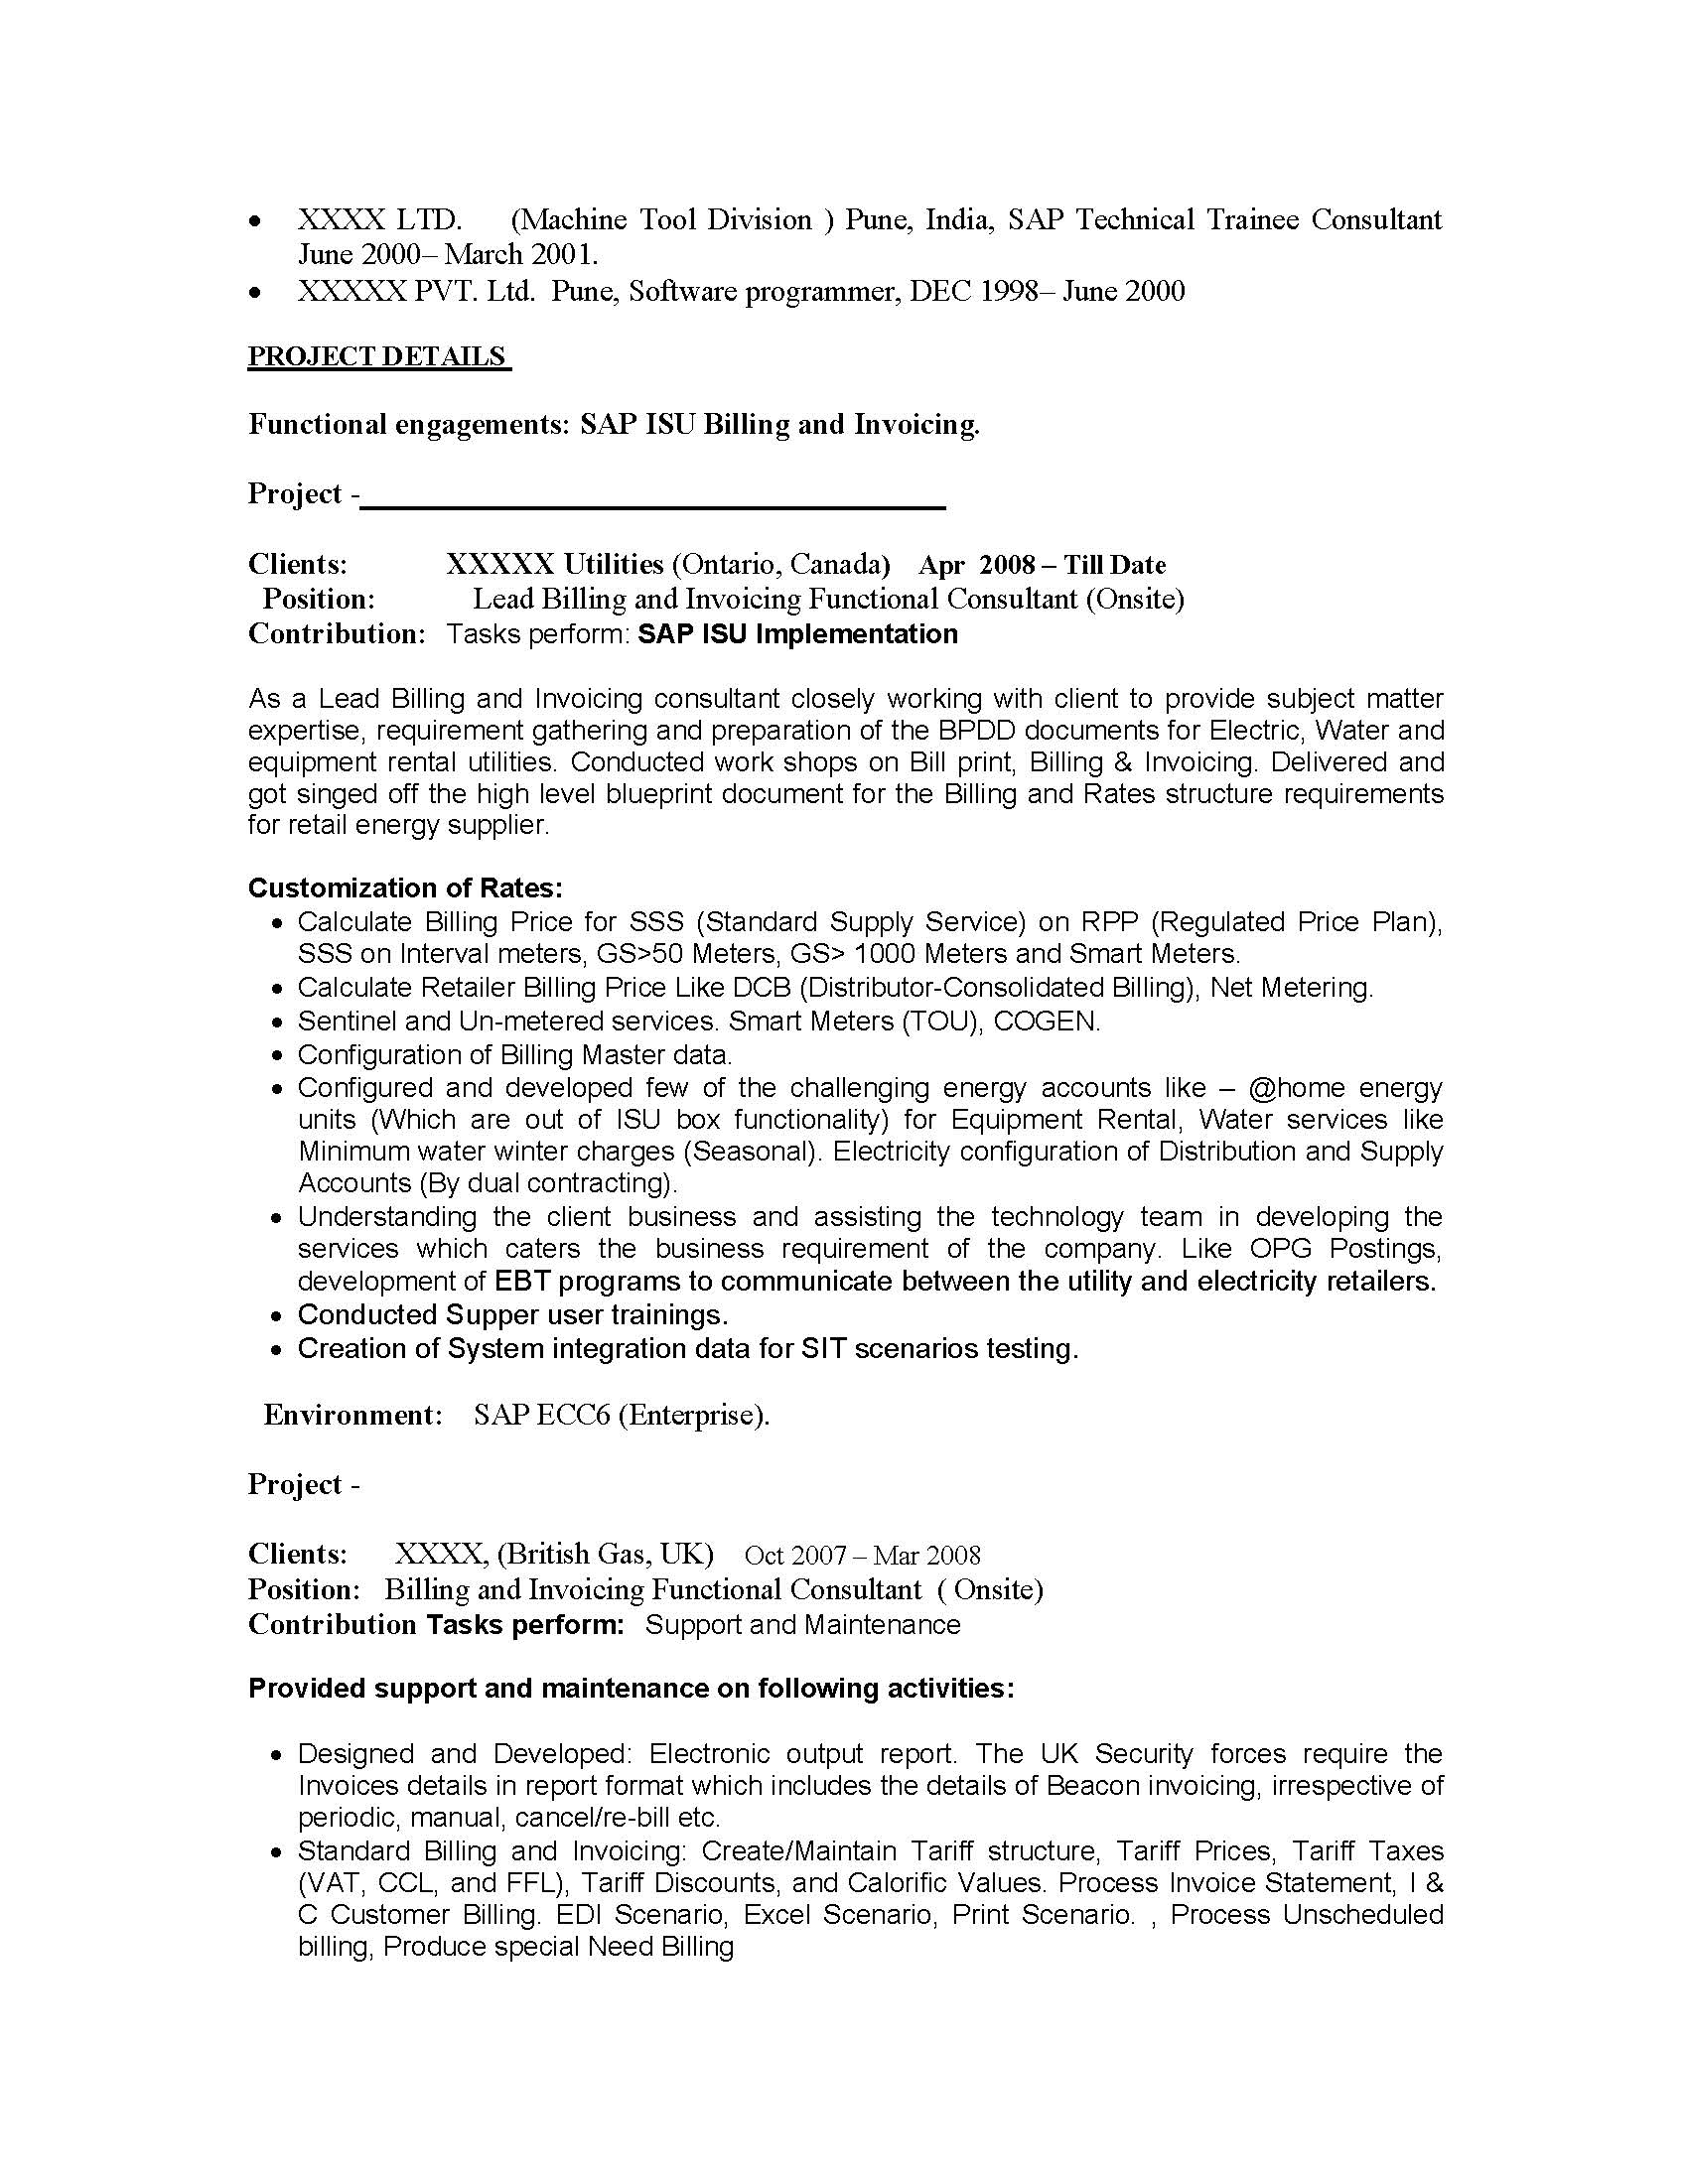 sap basis resume resume cv cover letter - Sample Sap Resume